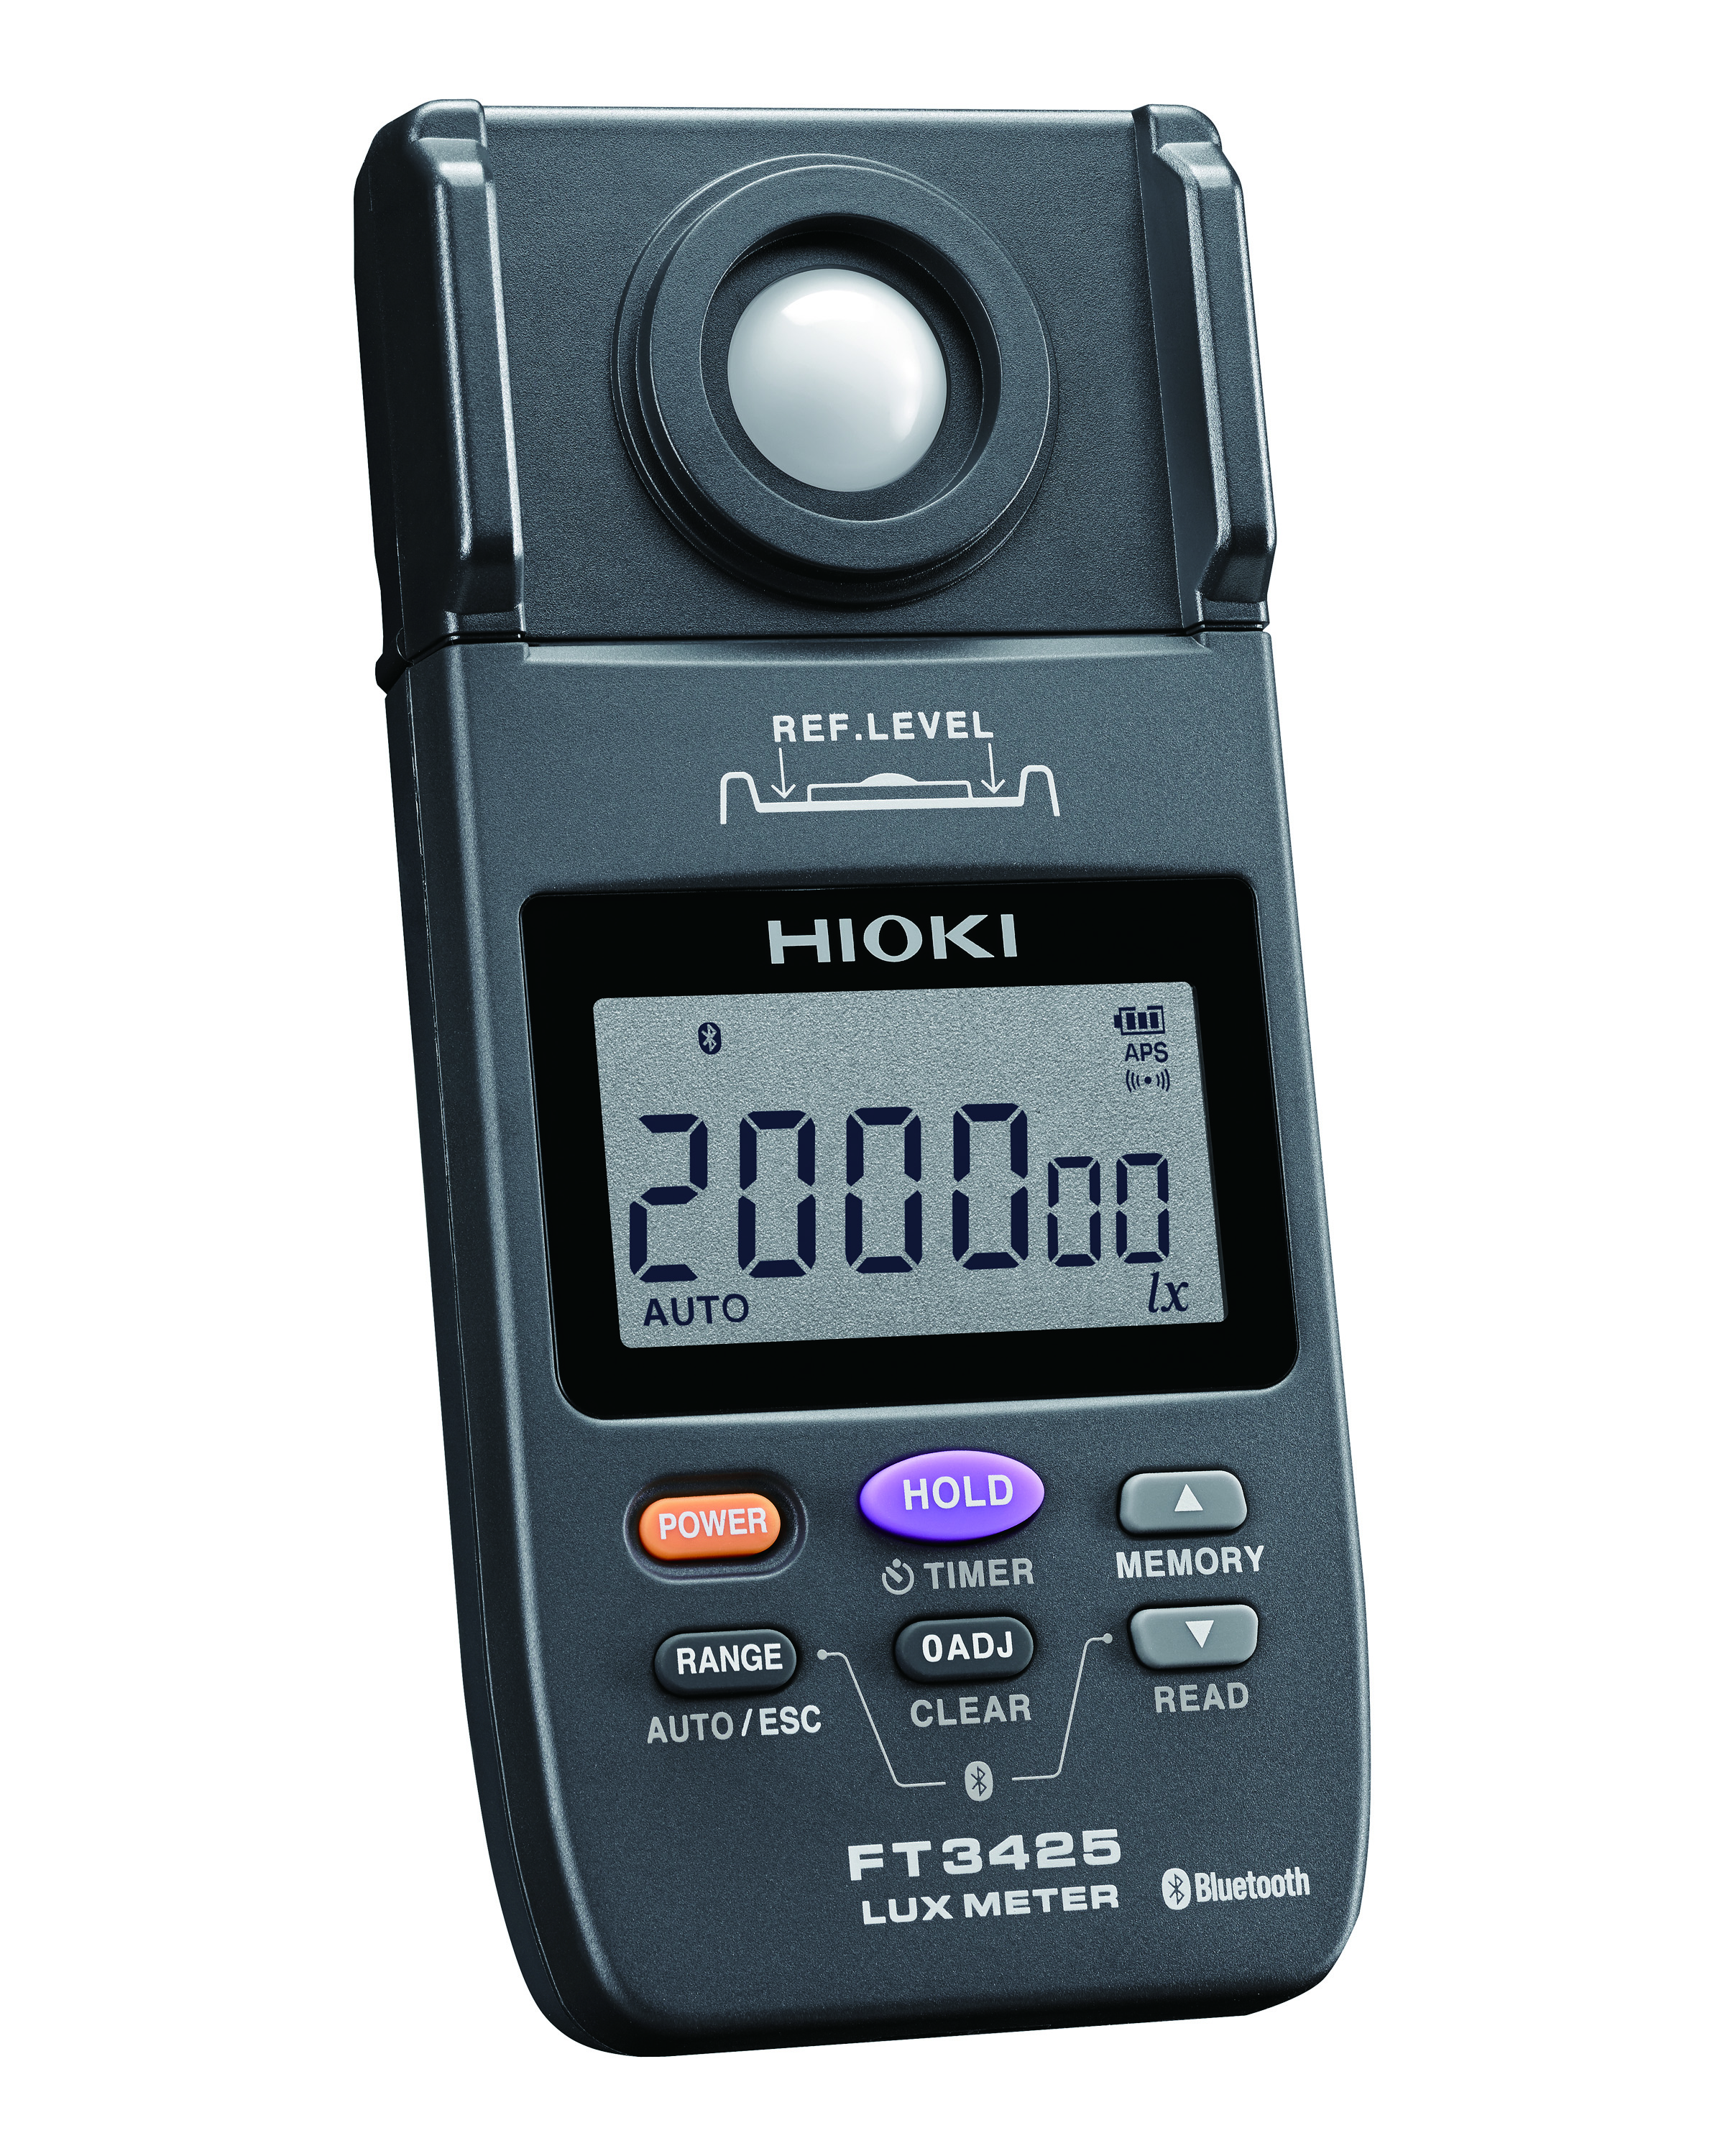 FT3425 LUX METER LIGHT DIGITAL 200,000 LUX. (Built in Bluetooth(R) wireless technology)